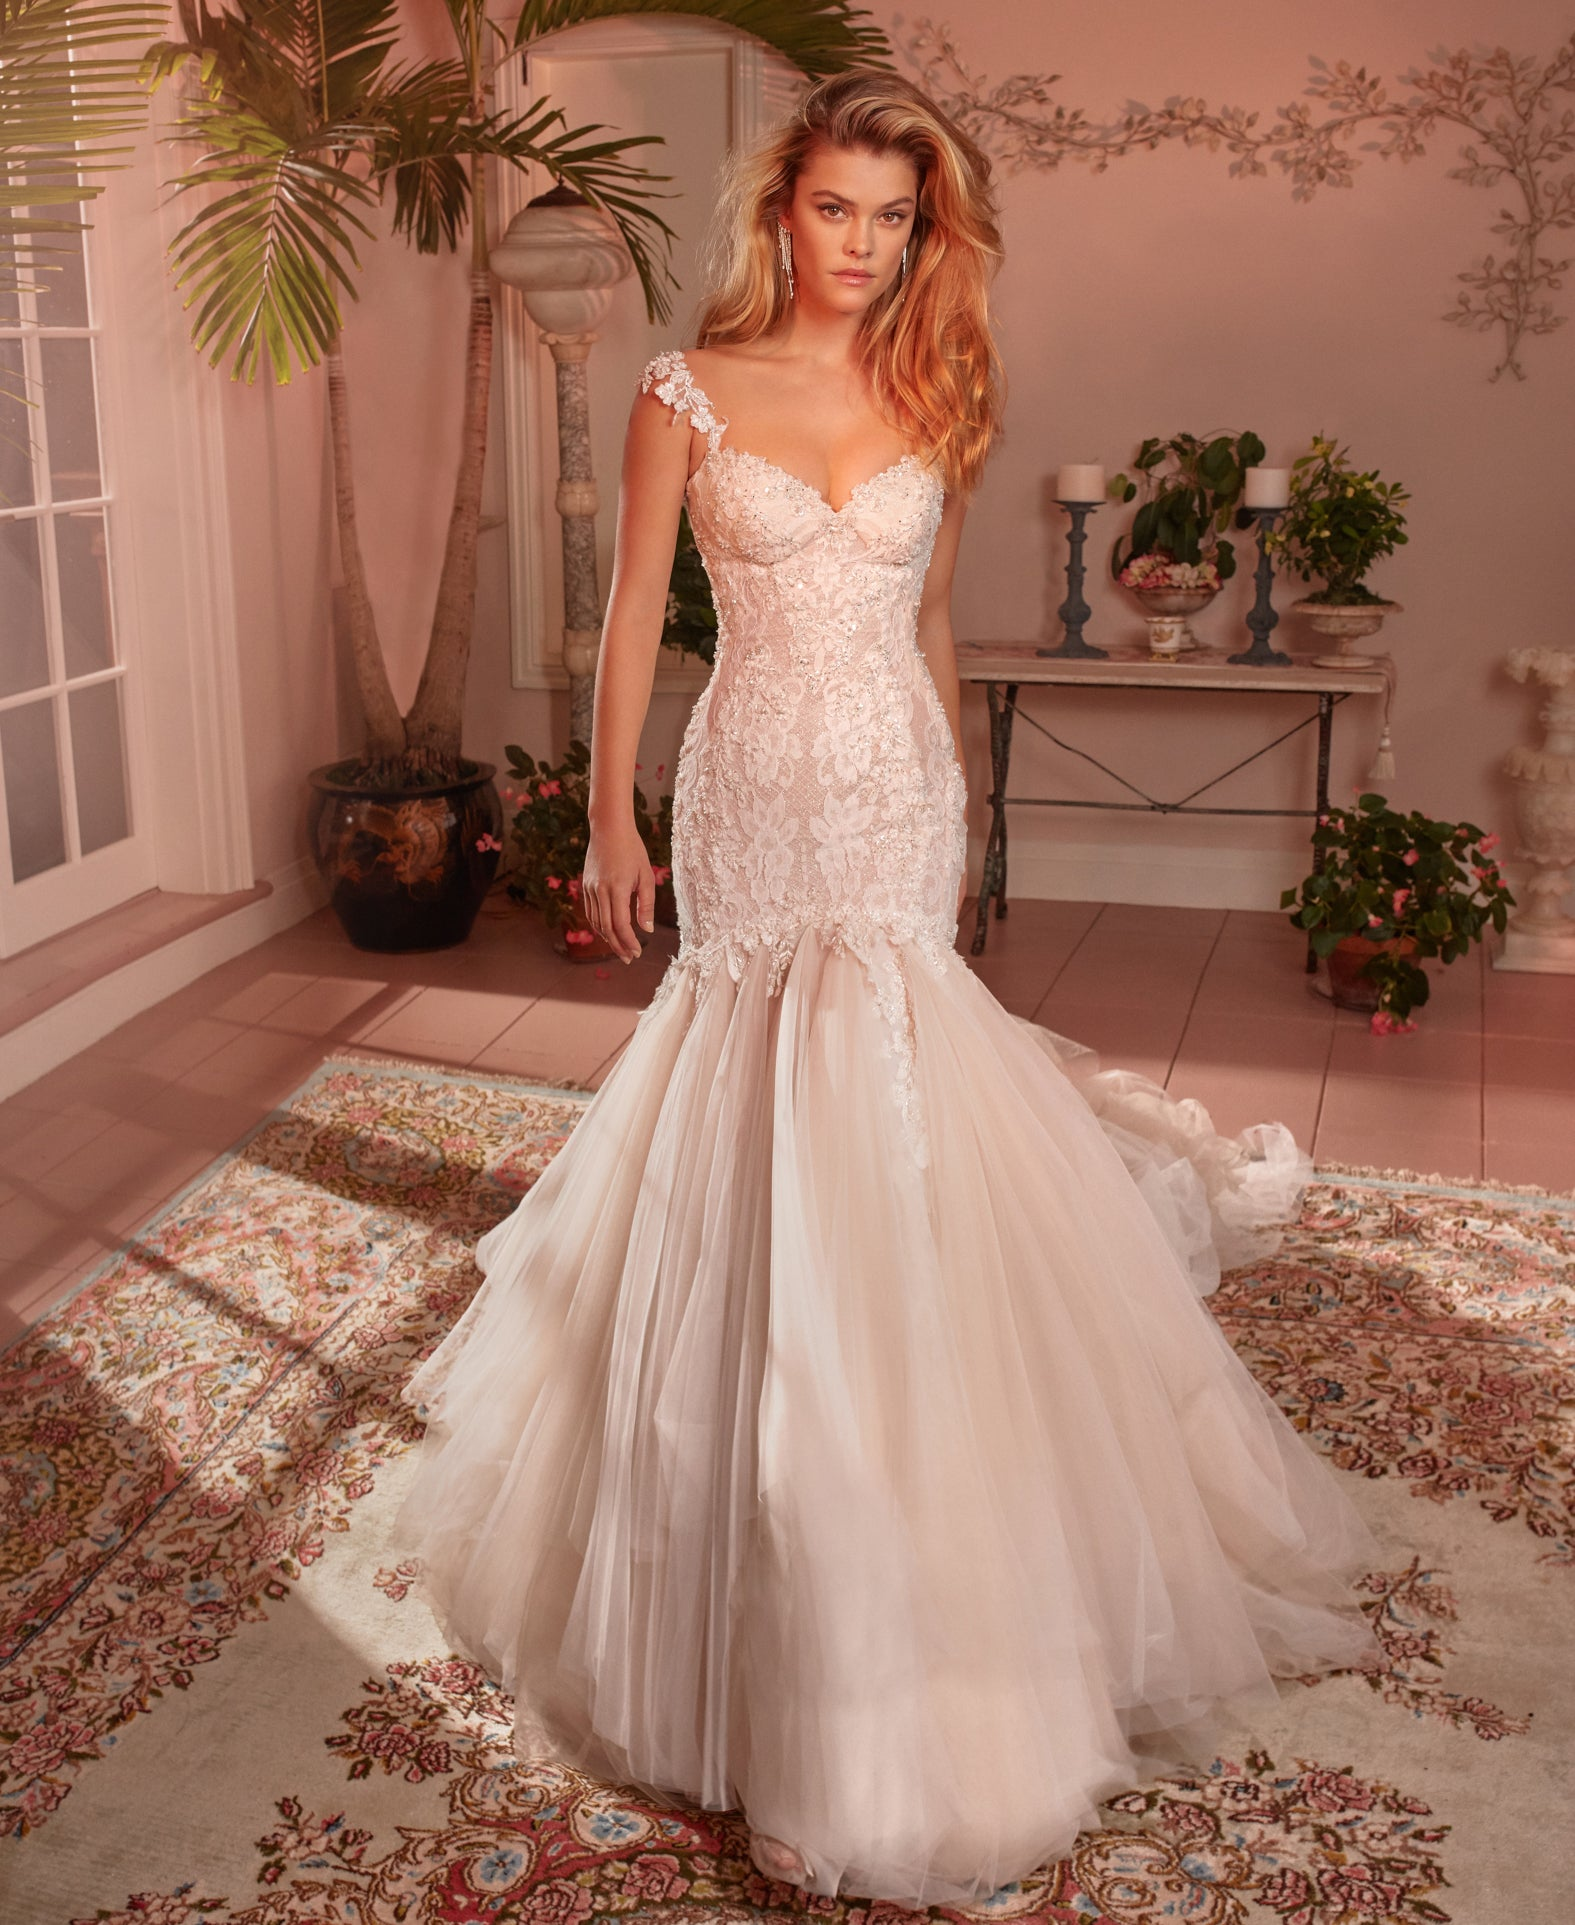 Haute Couture Wedding Gown: Galia Lahav Haute Couture Wedding Gown